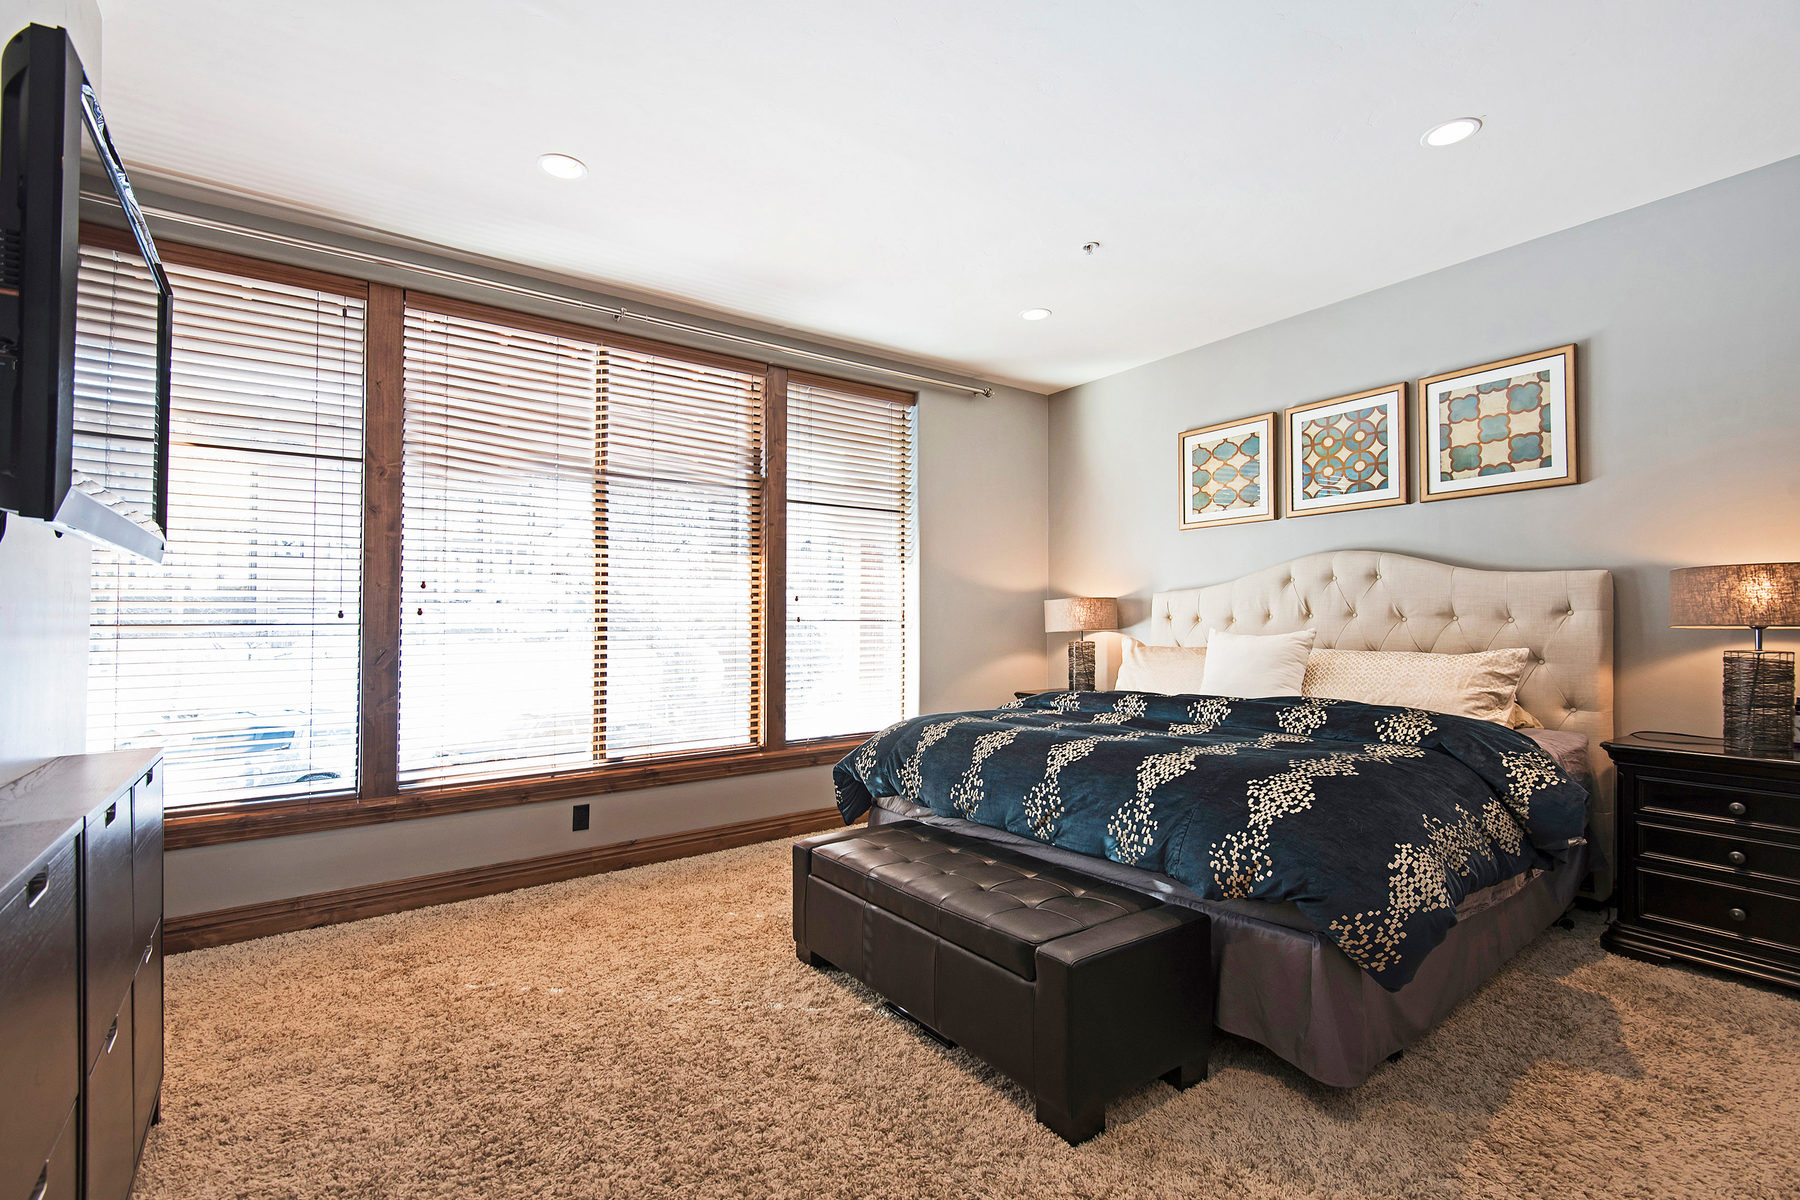 Additional photo for property listing at Recently Remodeled Deer Valley Condo 569 Deer Valley Loop Rd #7 Park City, Utah 84060 United States